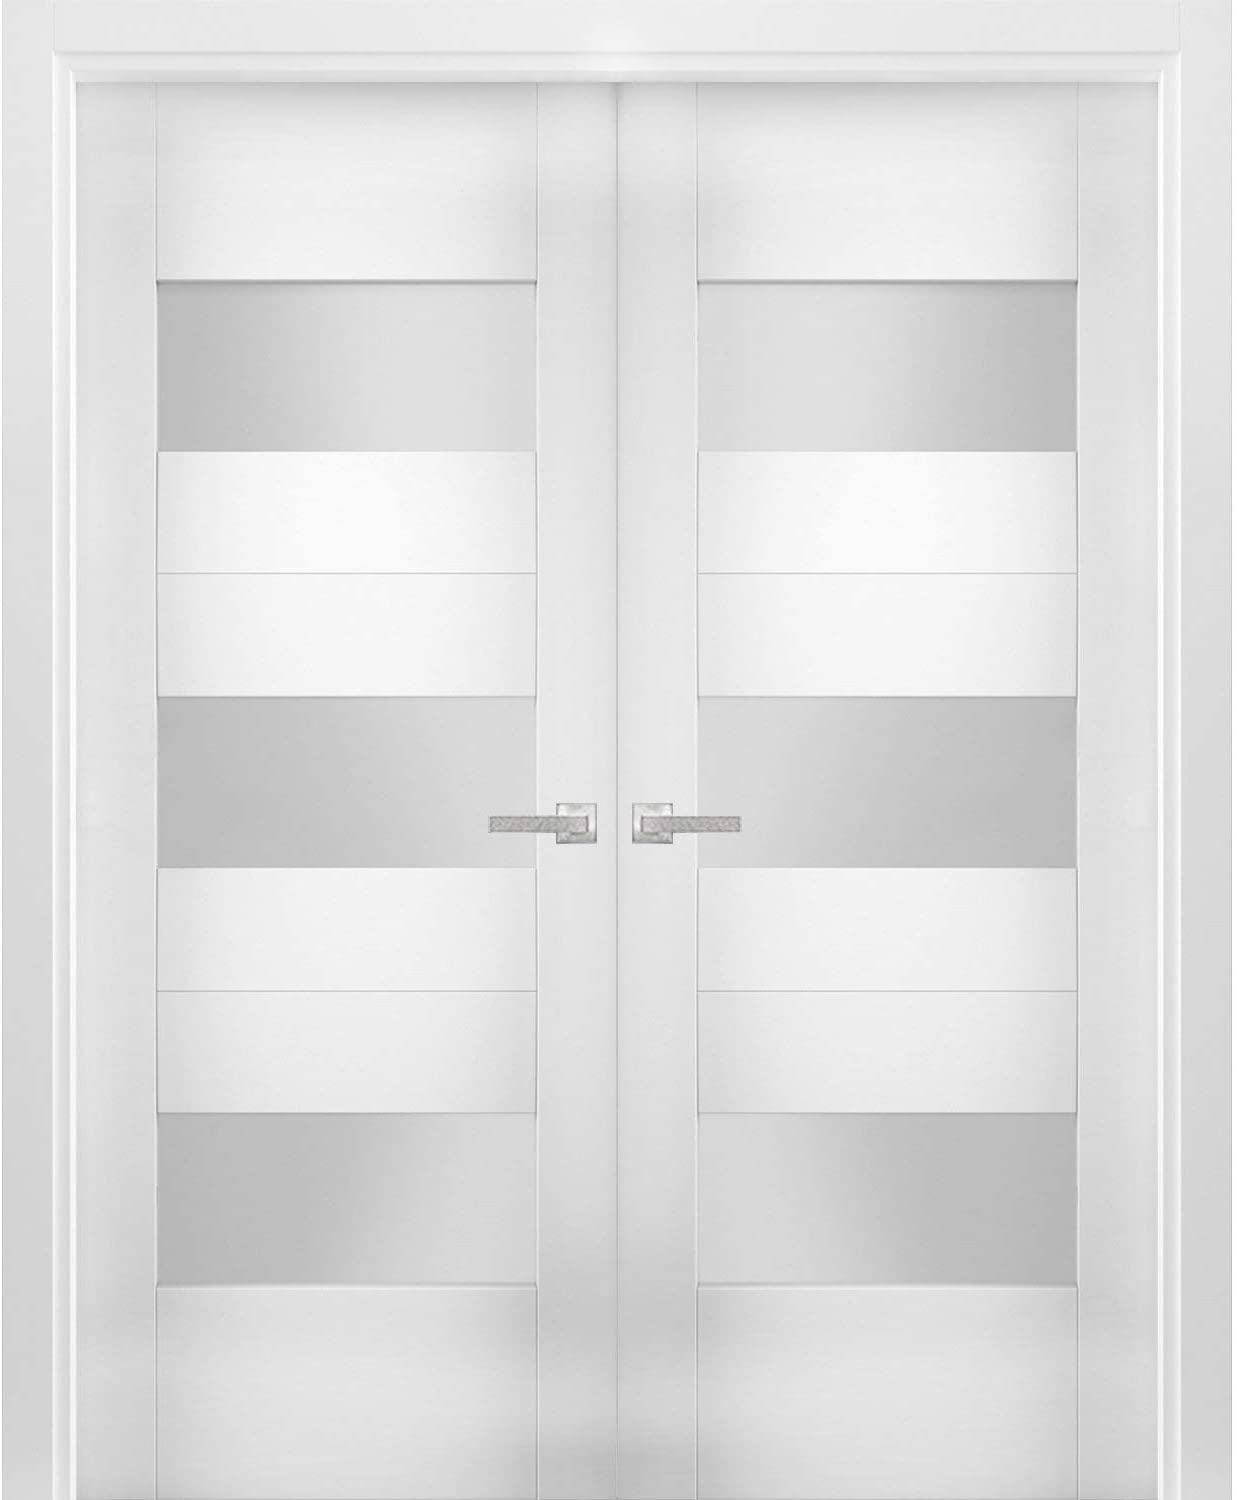 Solid French Manufacturer regenerated product Double Doors 72 x 84 6003 Opaque Cheap bargain inches Sete Glass